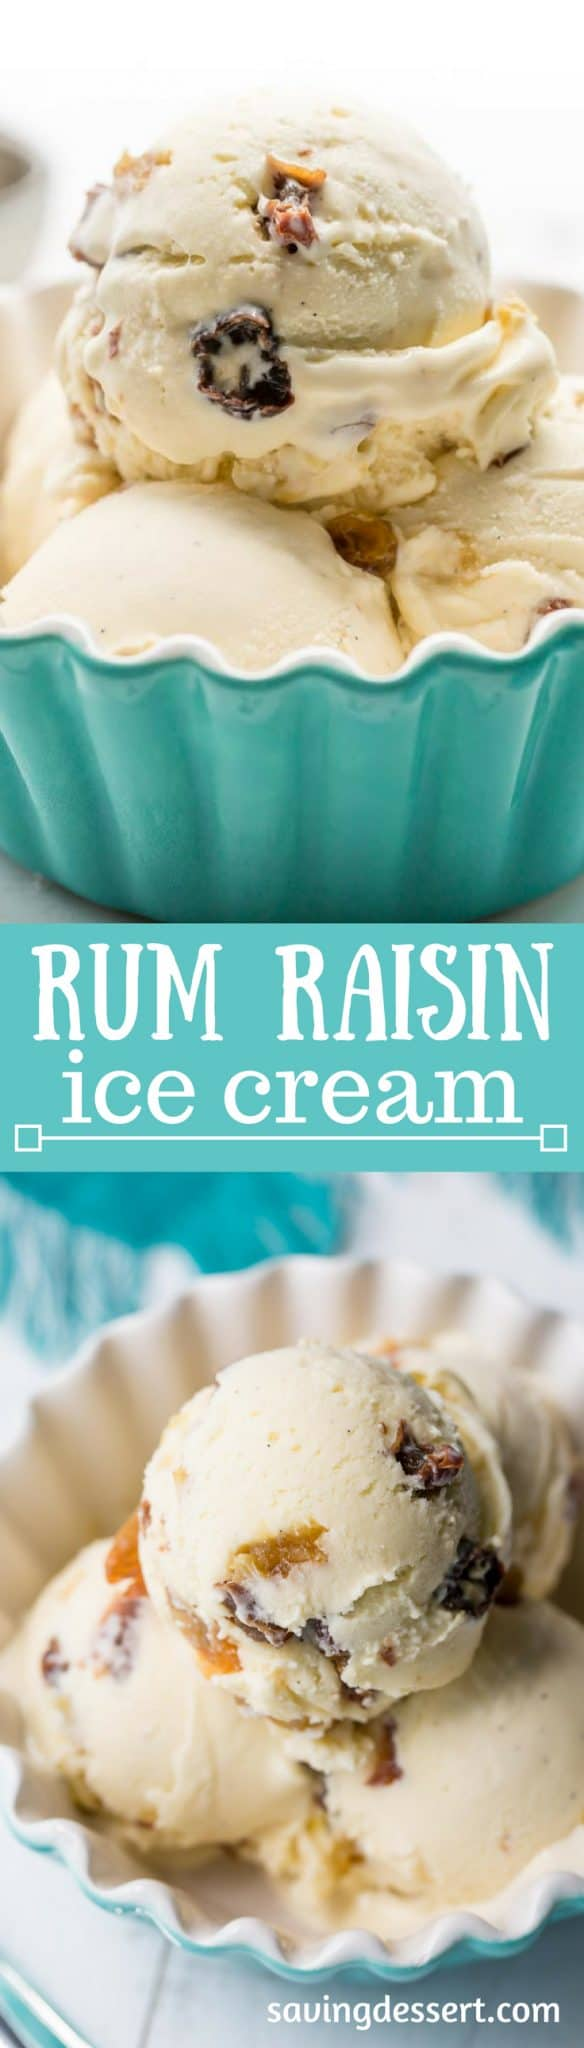 Rum Raisin Ice Cream ~ a classic summer treat with plump, rum soaked raisins and a rich custard base loaded with vanilla beans. www.savingdessert.com